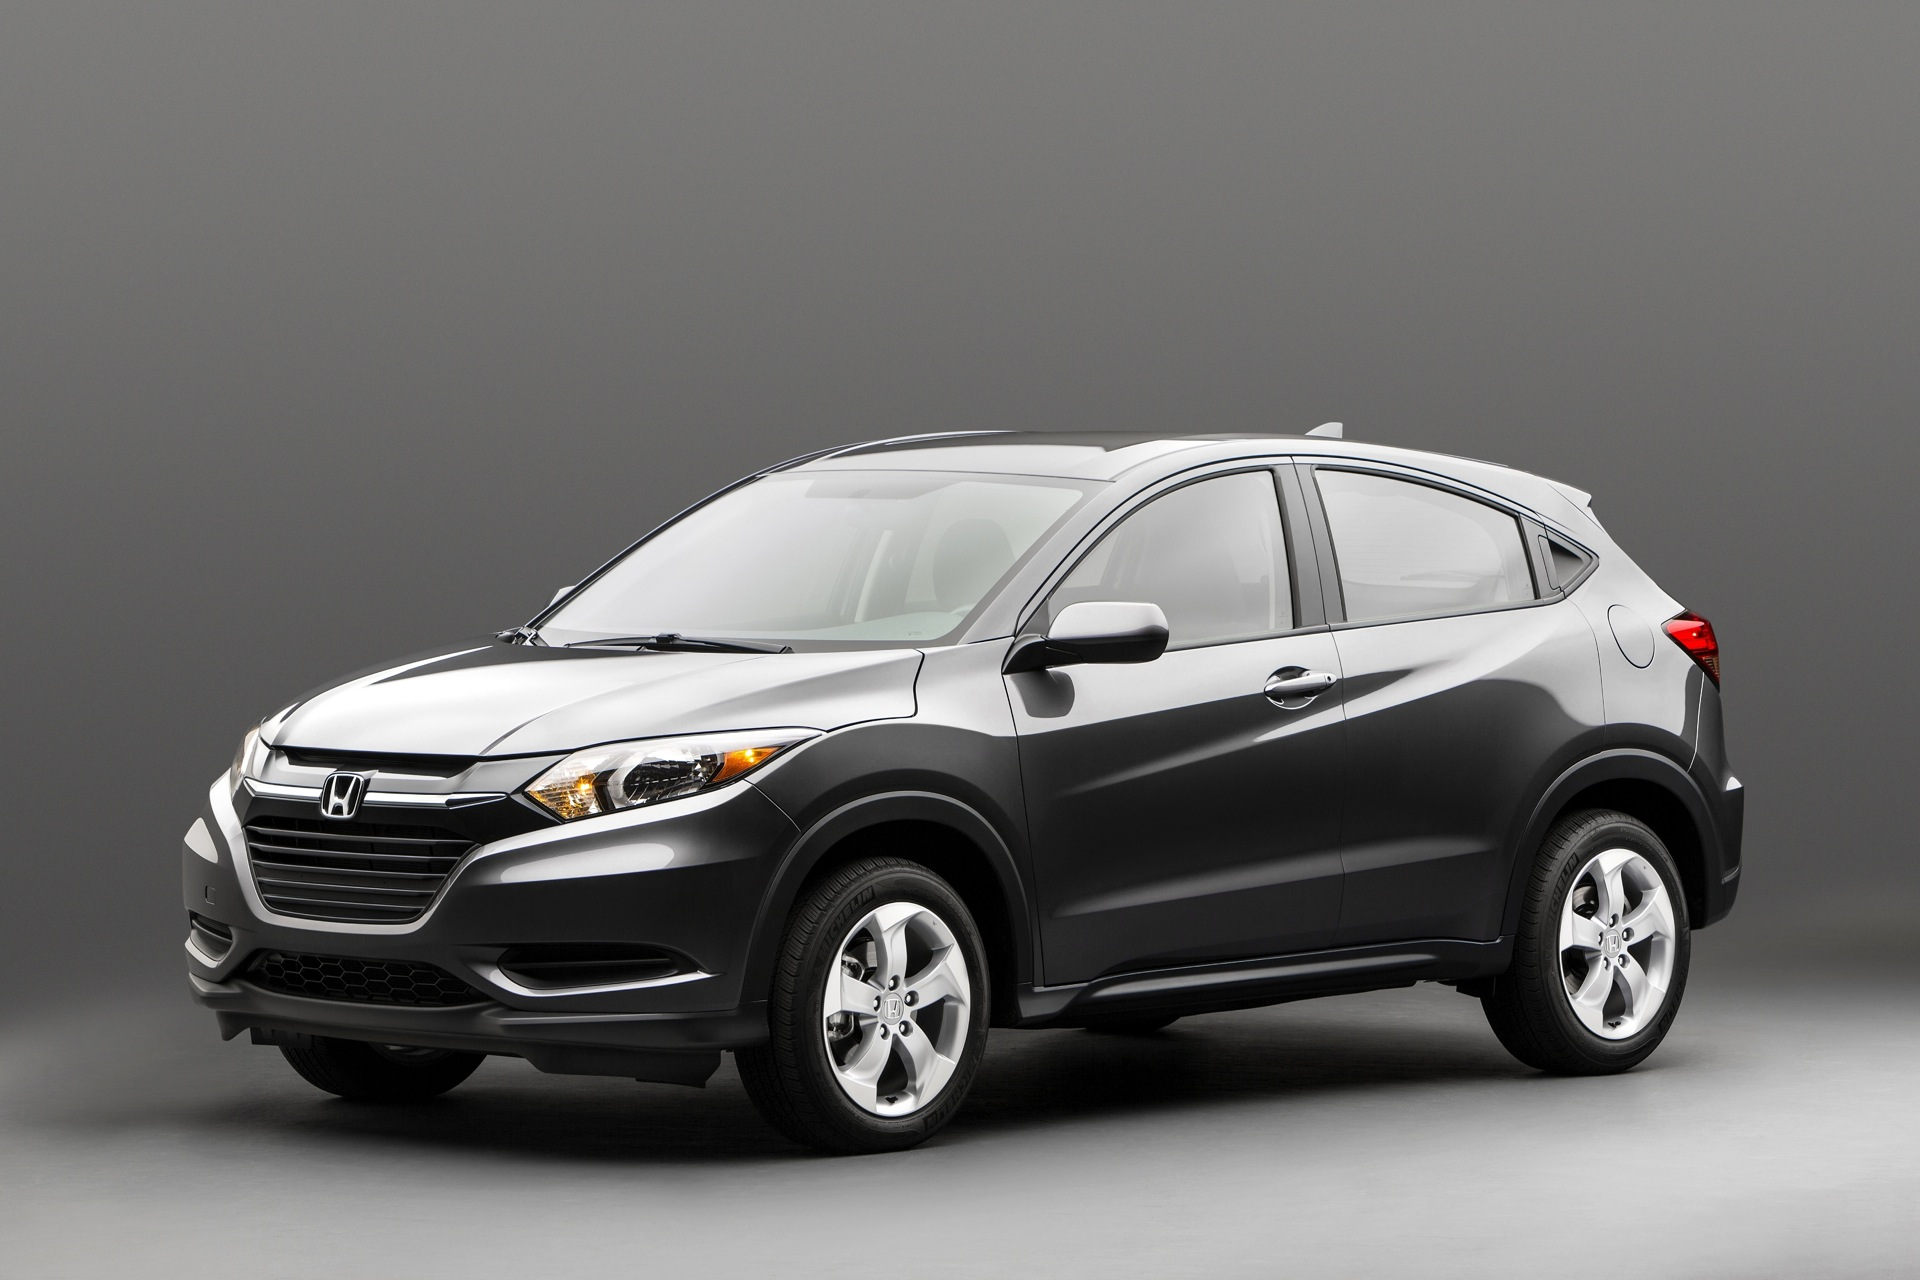 2015 honda hr v first details on new compact crossover. Black Bedroom Furniture Sets. Home Design Ideas